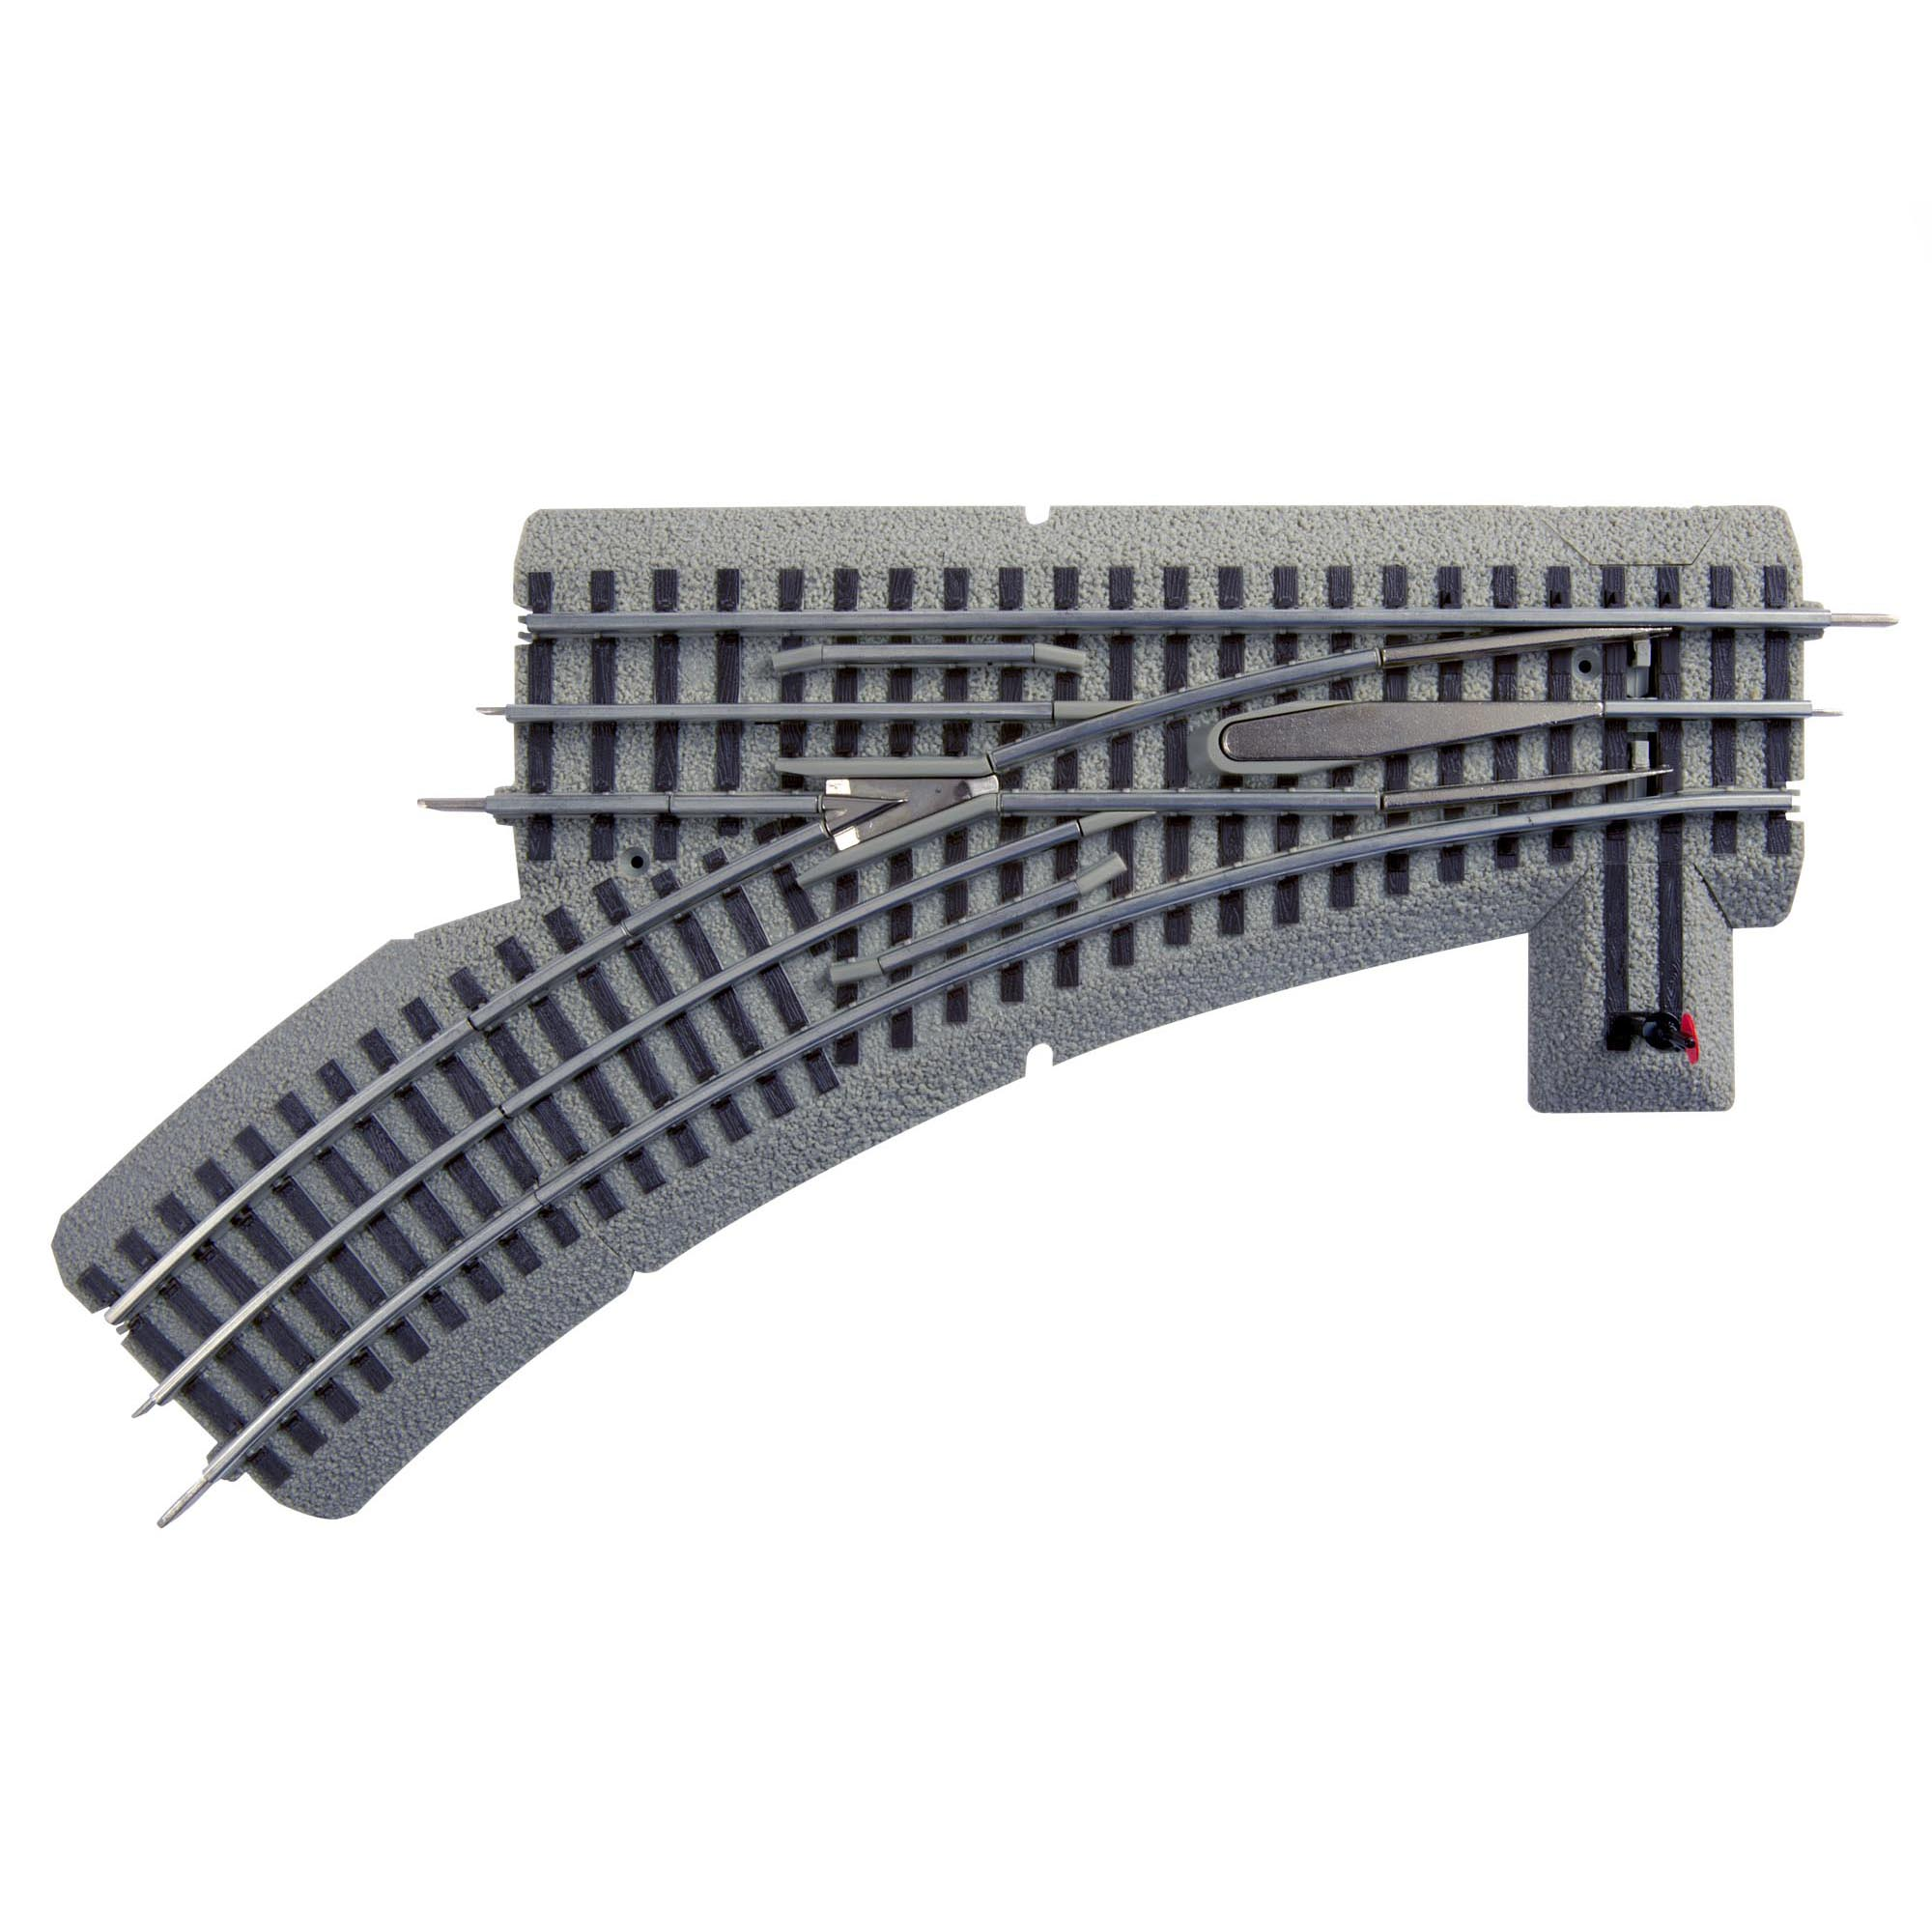 Lionel Trains O-Gauge Fastrack O36 Manual Left Hand Switch Track Piece w/ Curve